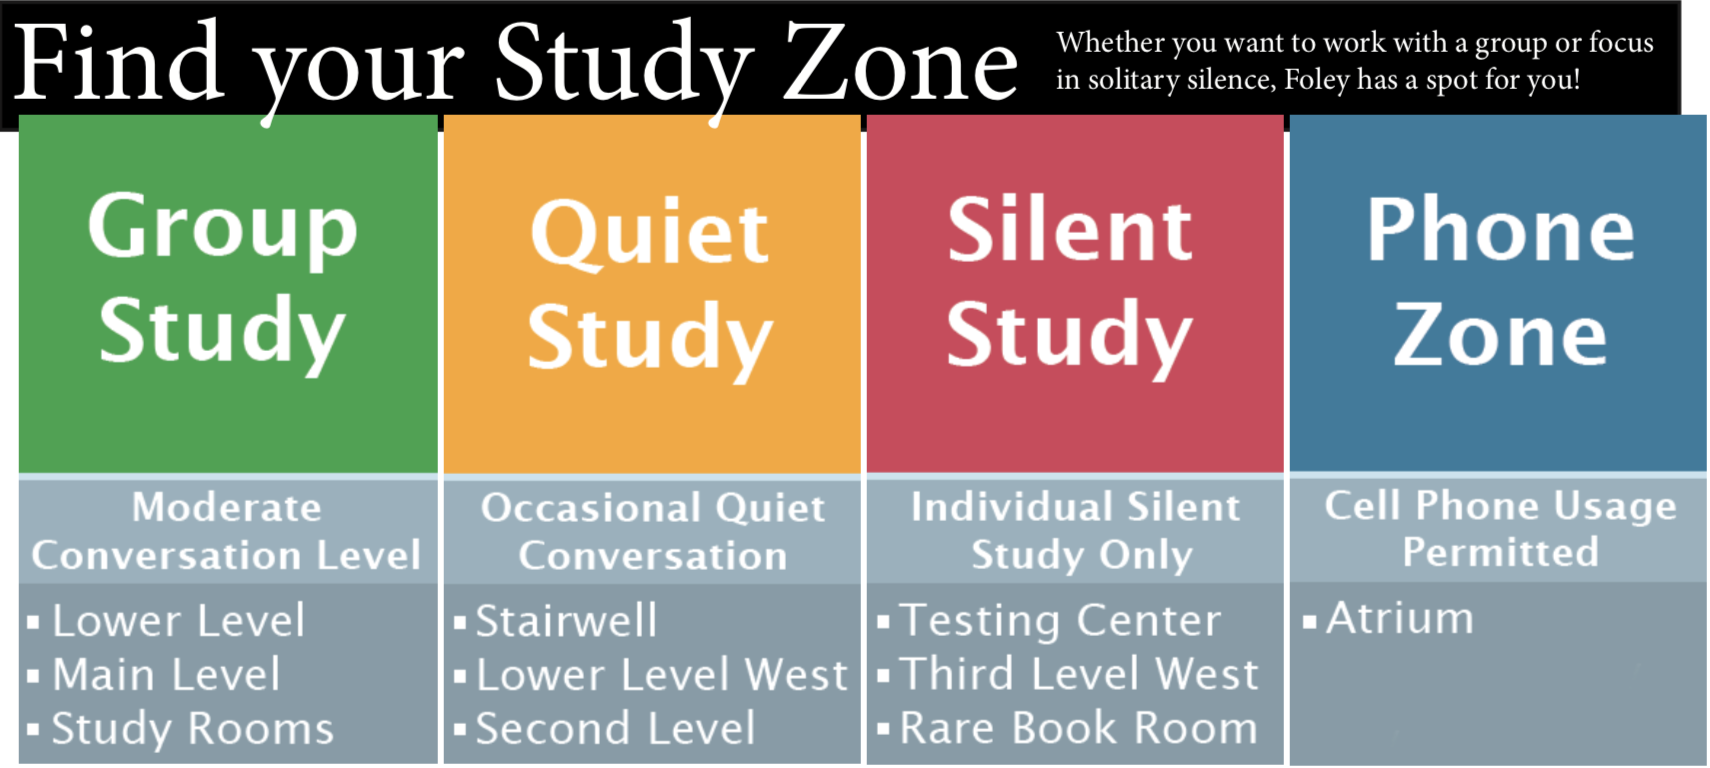 Find your study zone! Whether you want to work with a group or focus in solitary silence, Foley has a spot for you! Green is group study zone: moderate conversation level. It is found on the main level in the study rooms. Yellow is quiet study. Occasional quiet conversation is permitted. It is found on the stairwell, on the second level, and in parts of the lower level. Red is silent study. Individual silent study only is appropriate. It is found on the third floor. Blue is the phone zone, where cell phone use is permitted. It is found in the atrium.